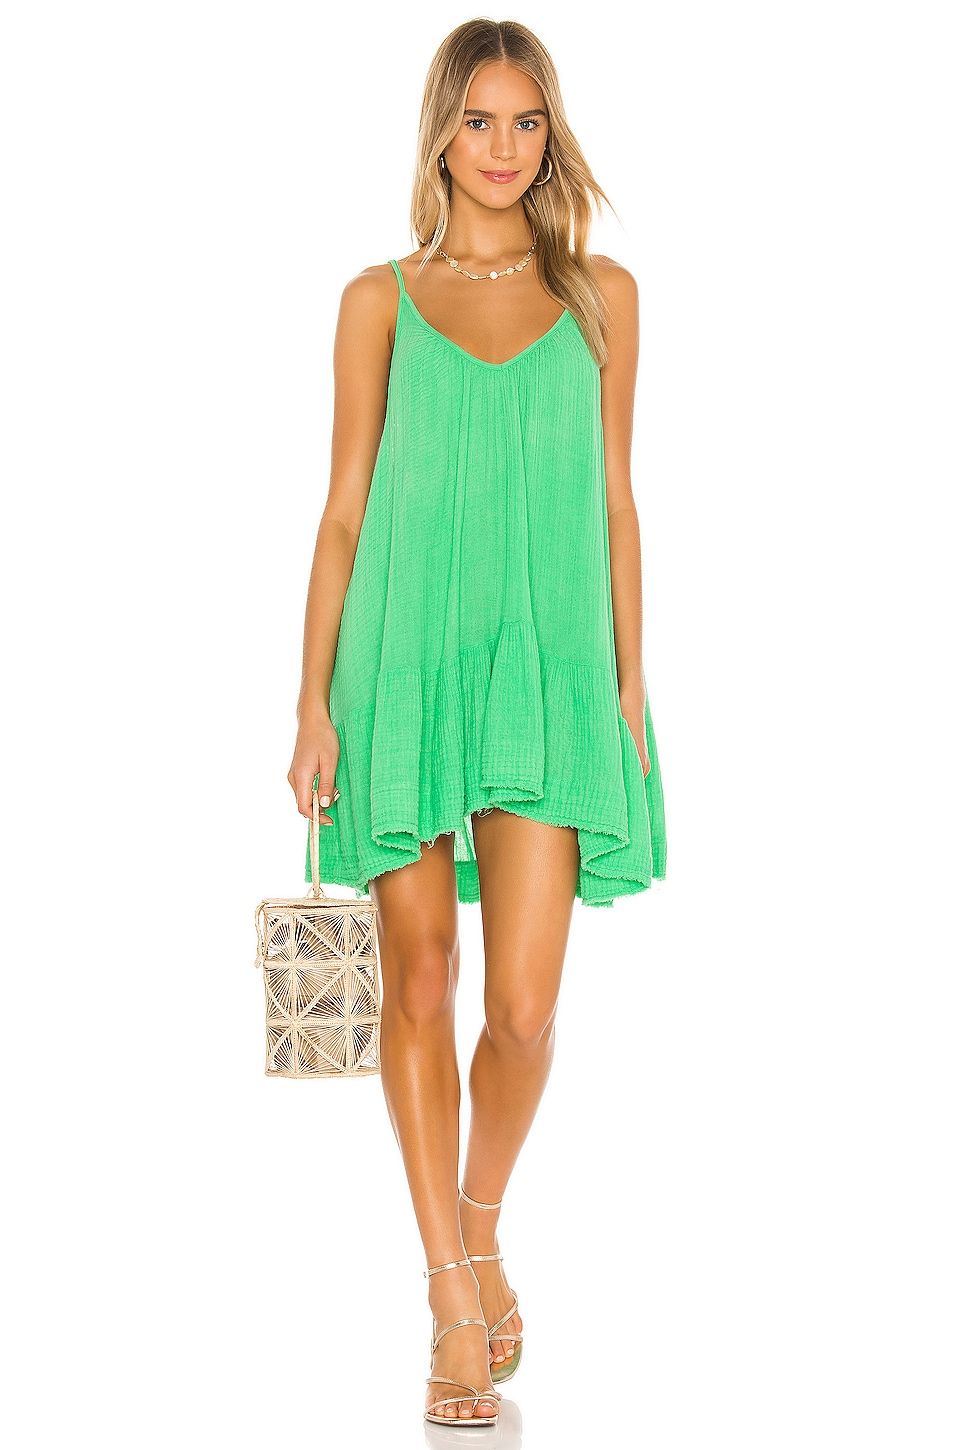 St Tropez Ruffle Mini Dress             9 Seed                                                                                                       CA$ 209.51 5